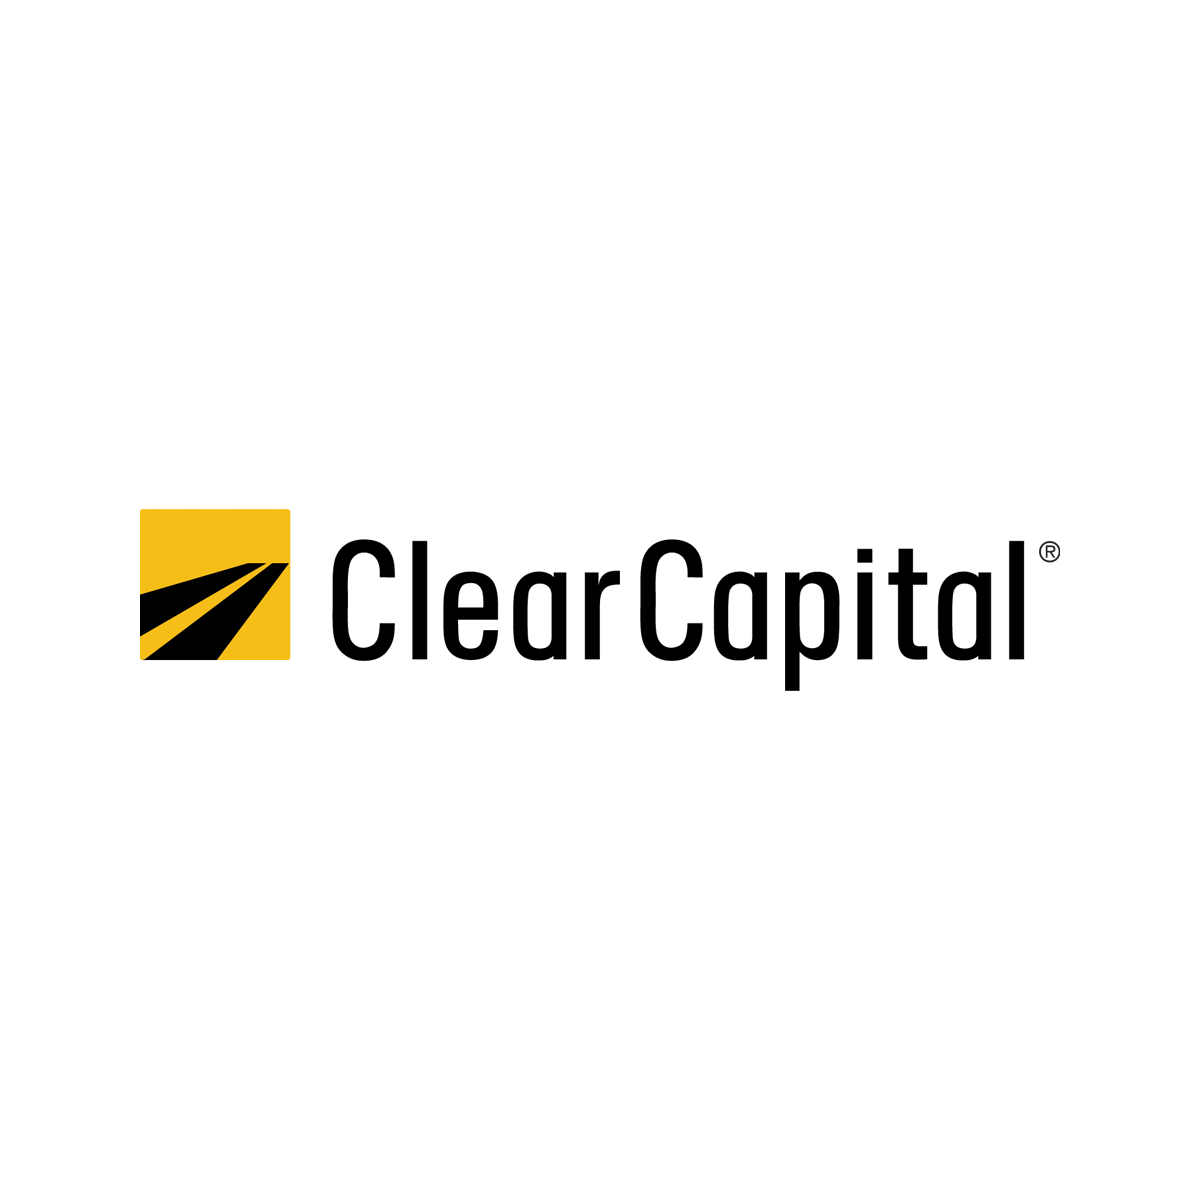 Image result for clearcapital.com